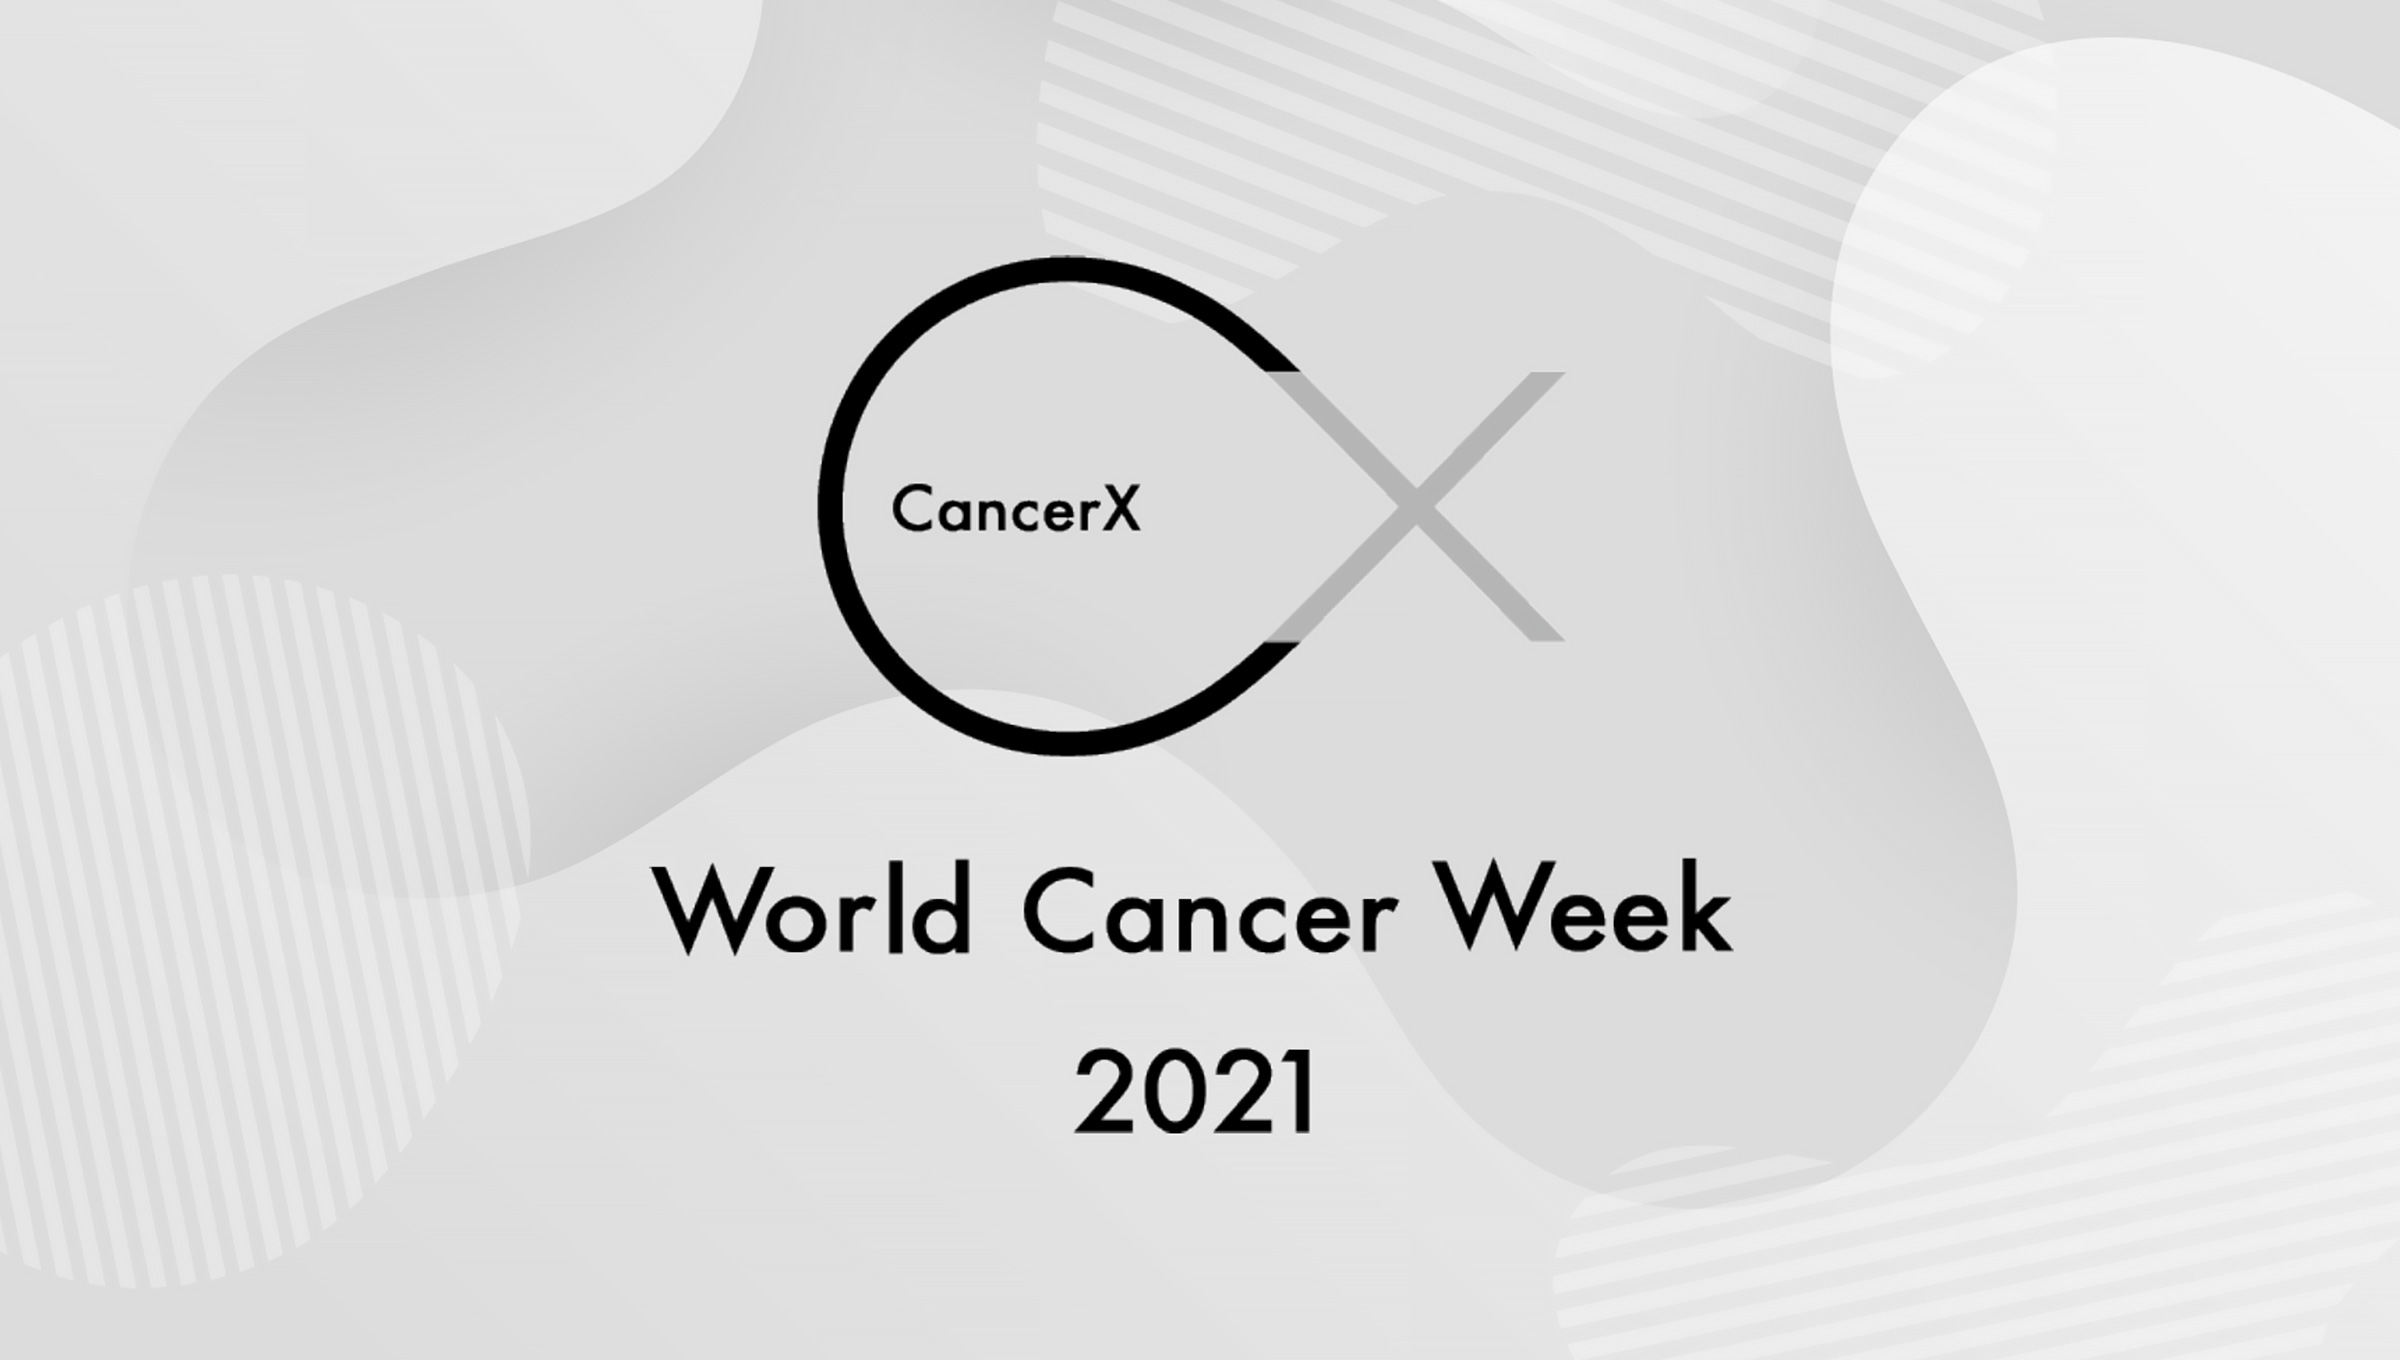 COCO&RONAは「CancerX World Cancer Week 2021」に協賛します。